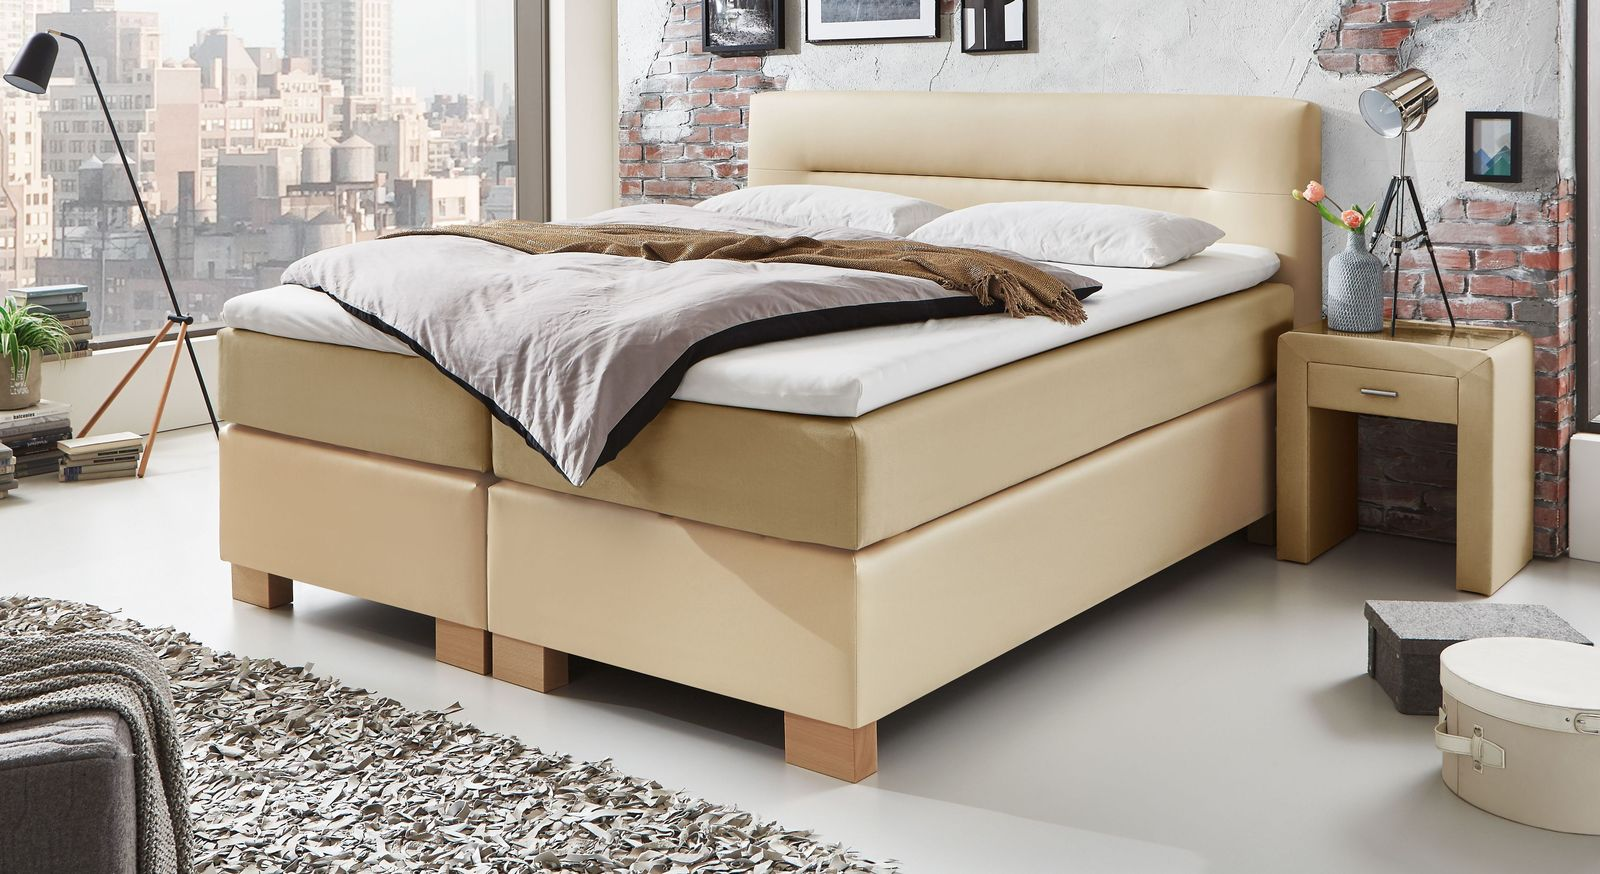 Boxspringbett Sunshine in sand- und naturfarbenem Materialmix